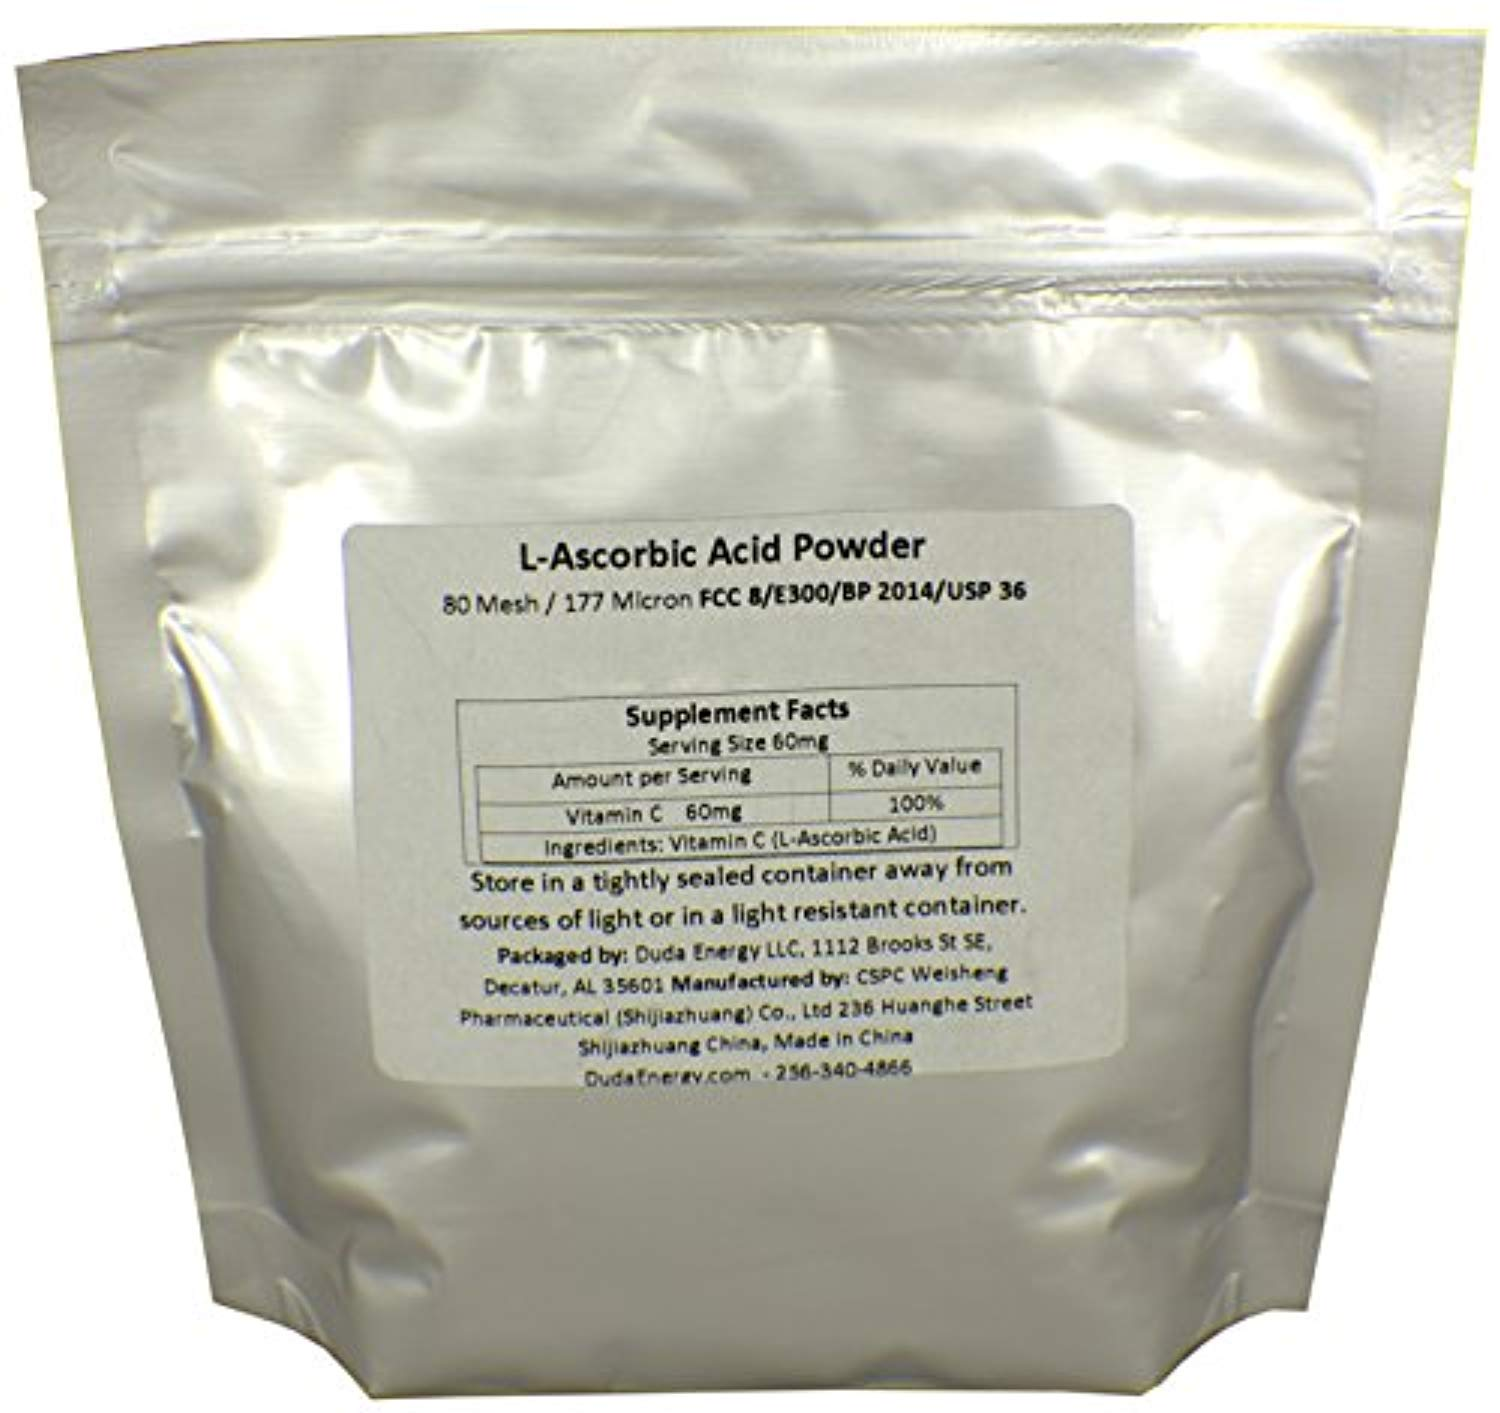 Food Grade Bag of L-Ascorbic Acid Powder,Nutritional Supplement Naturally Fermented Pure White Crystals Form of Vitamin C image